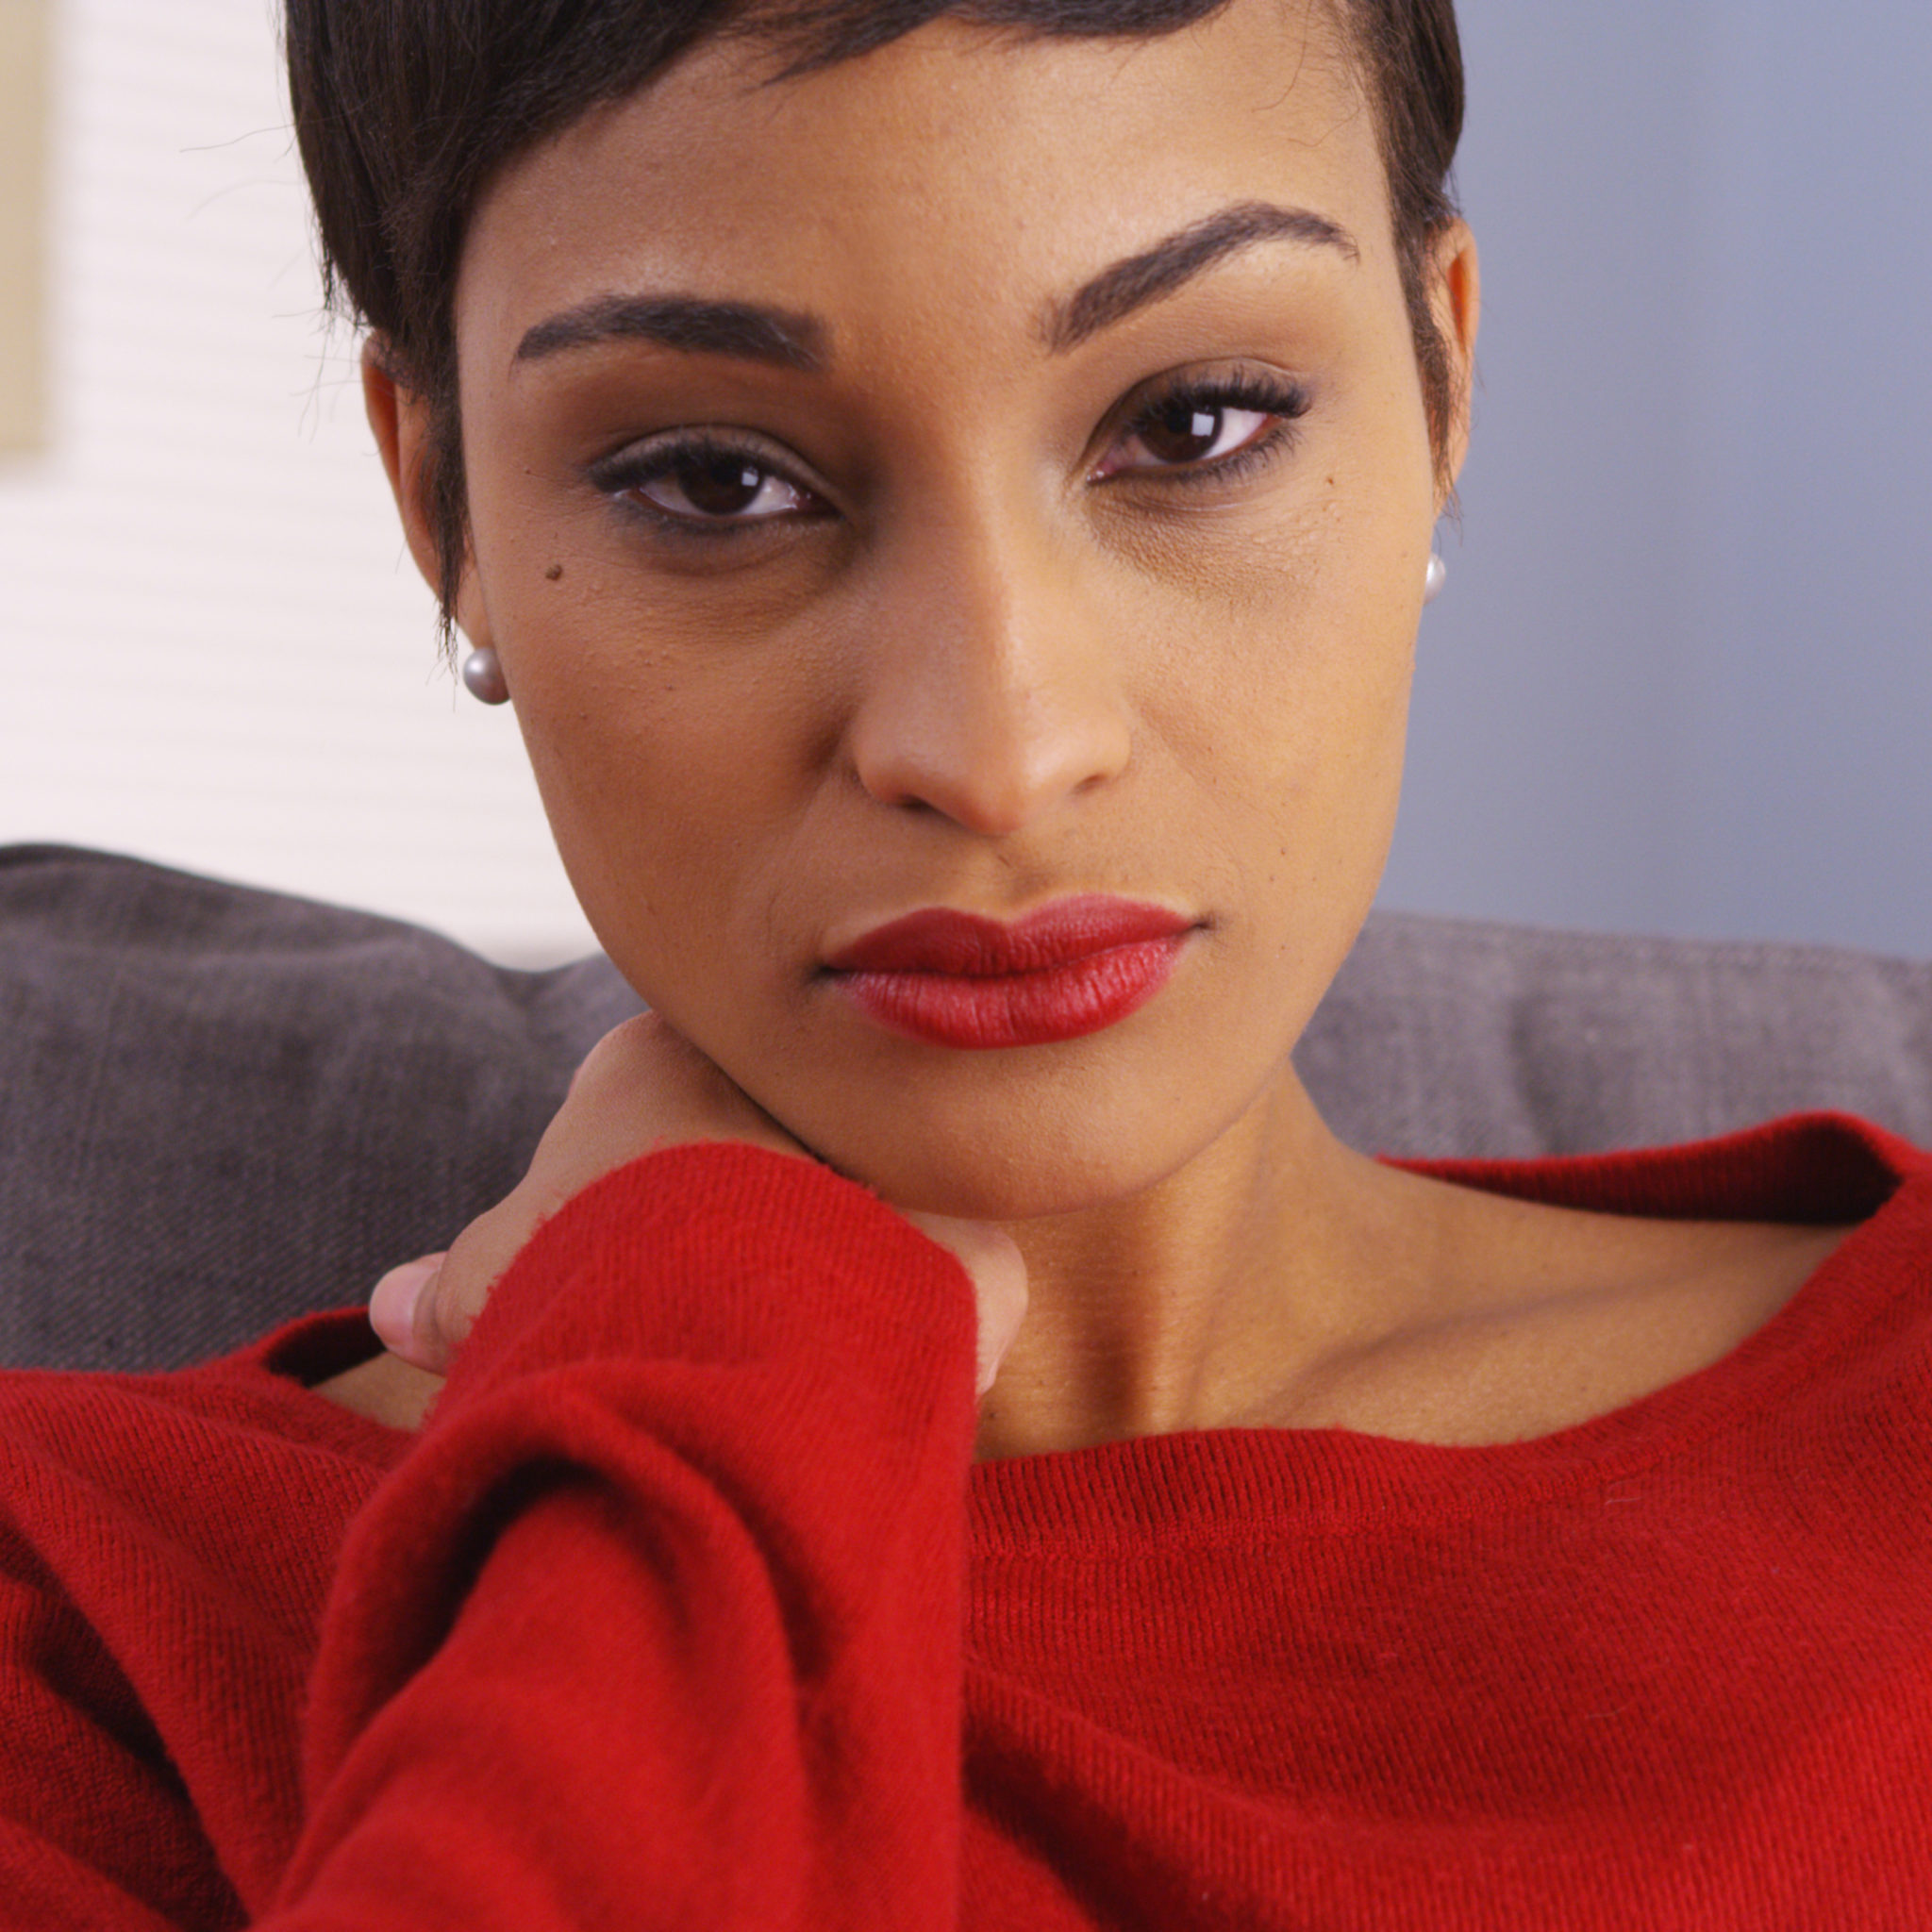 Positive Circles specializes in professional counselling, psychotherapy, mental health and support services for the whole family. Serving the greater Toronto, Canada area. Picture of a sad black woman sitting on couch wearing a red top. www.positivecircles.com